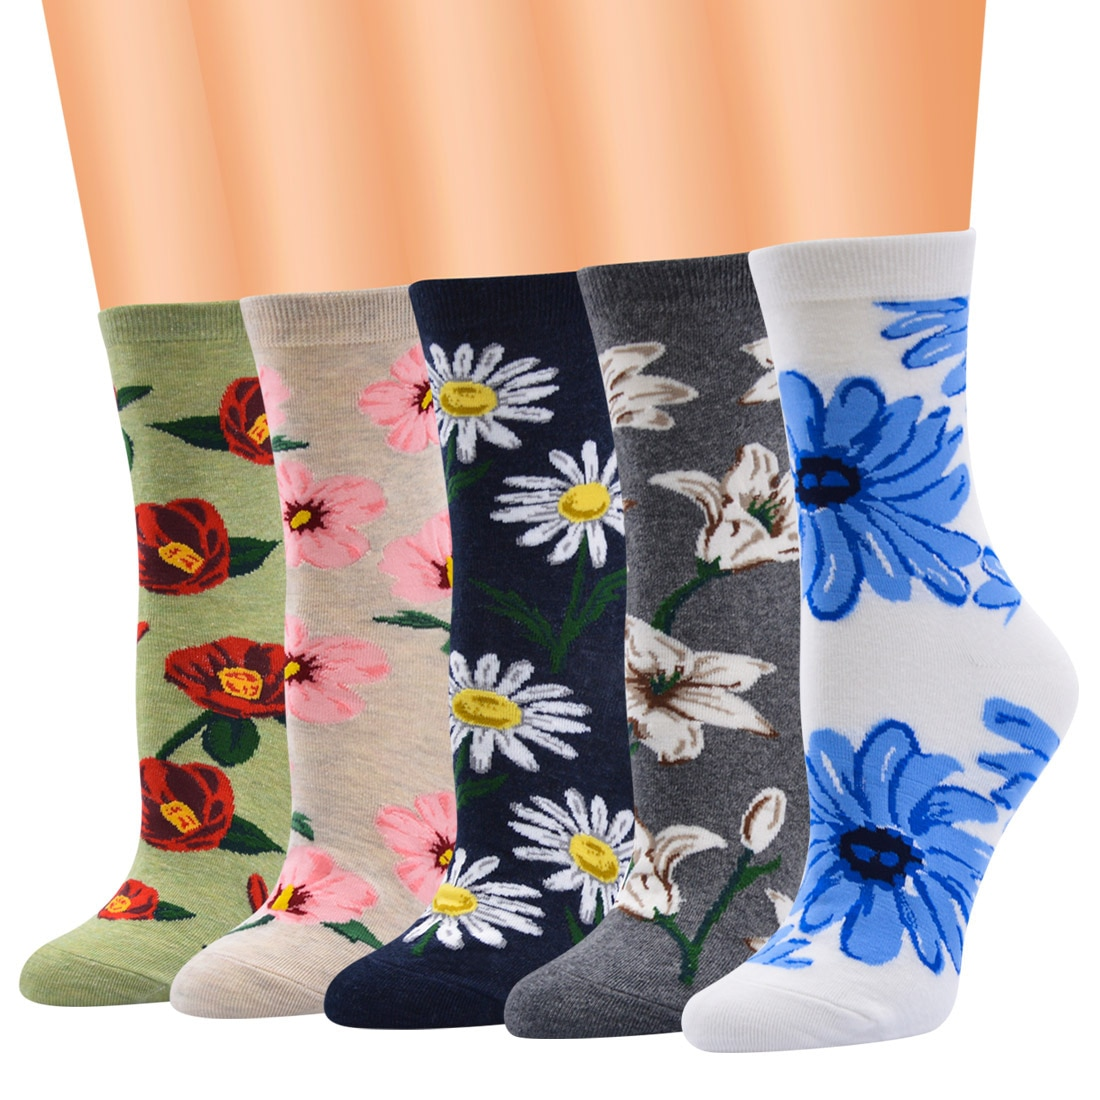 Women Low Tube Beautiful Flower Print Pattern Lovely Cute Combed Cotton Knitted Floral Socks For Girls